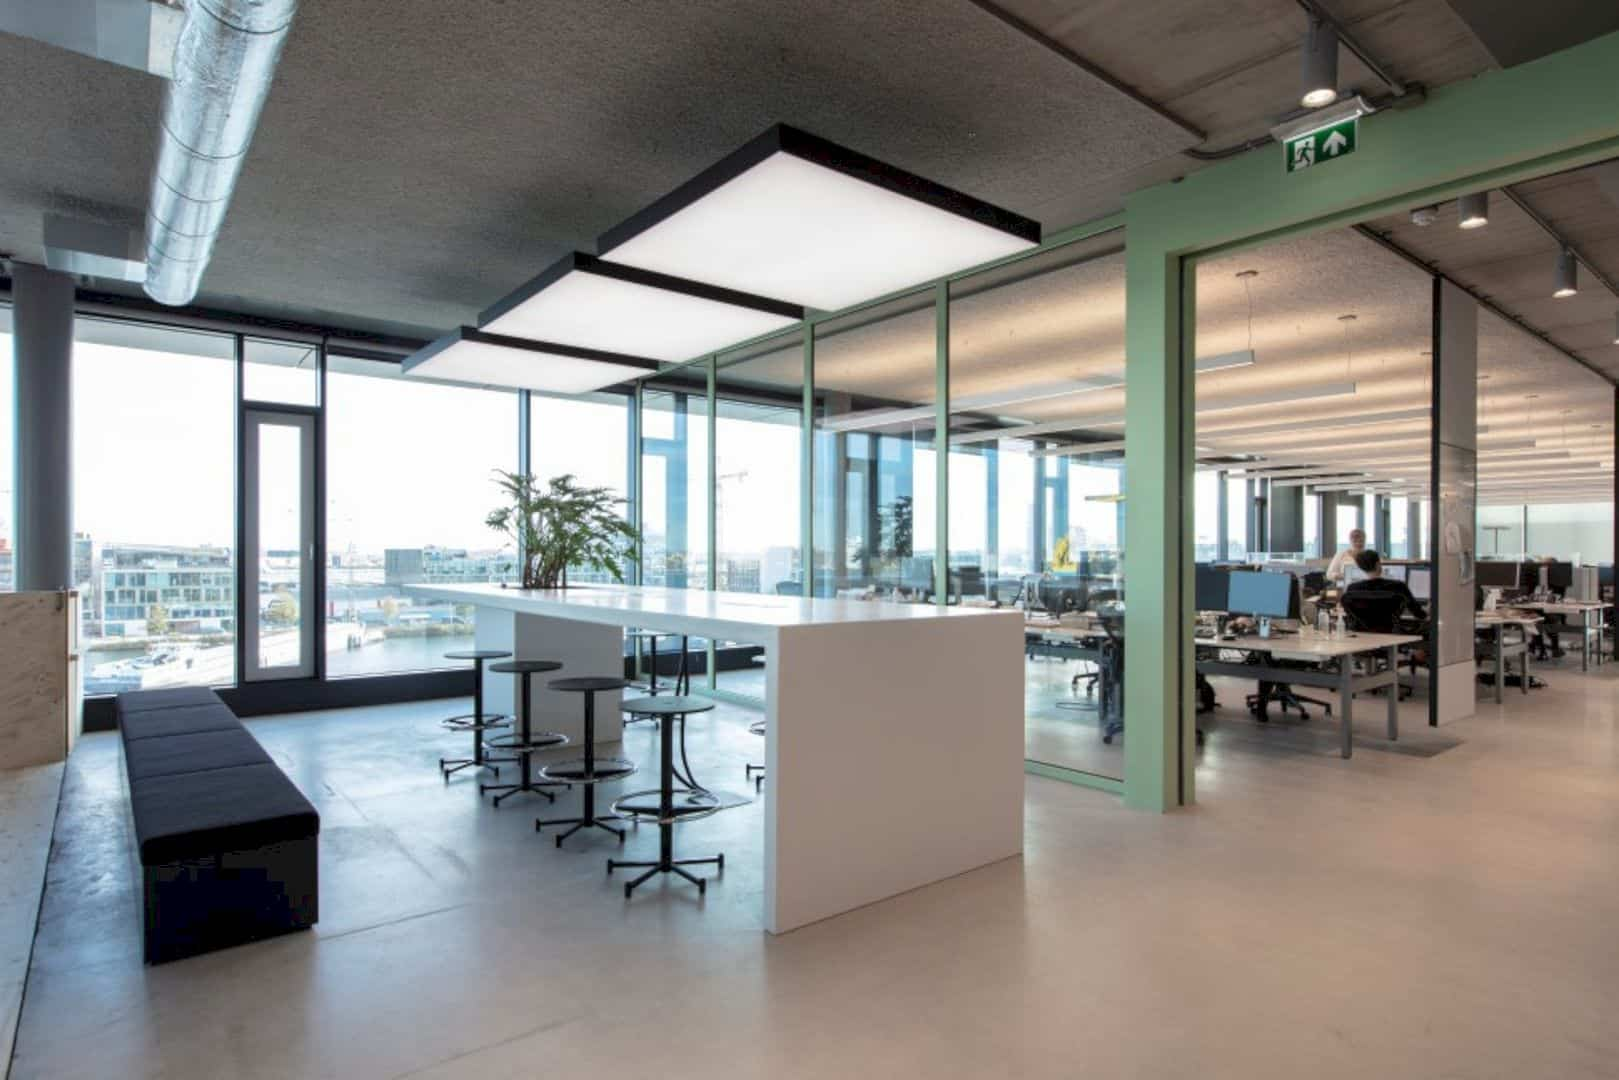 Rijnboutt: An Office Interior with Energizing Atmosphere in A Transparent New Building